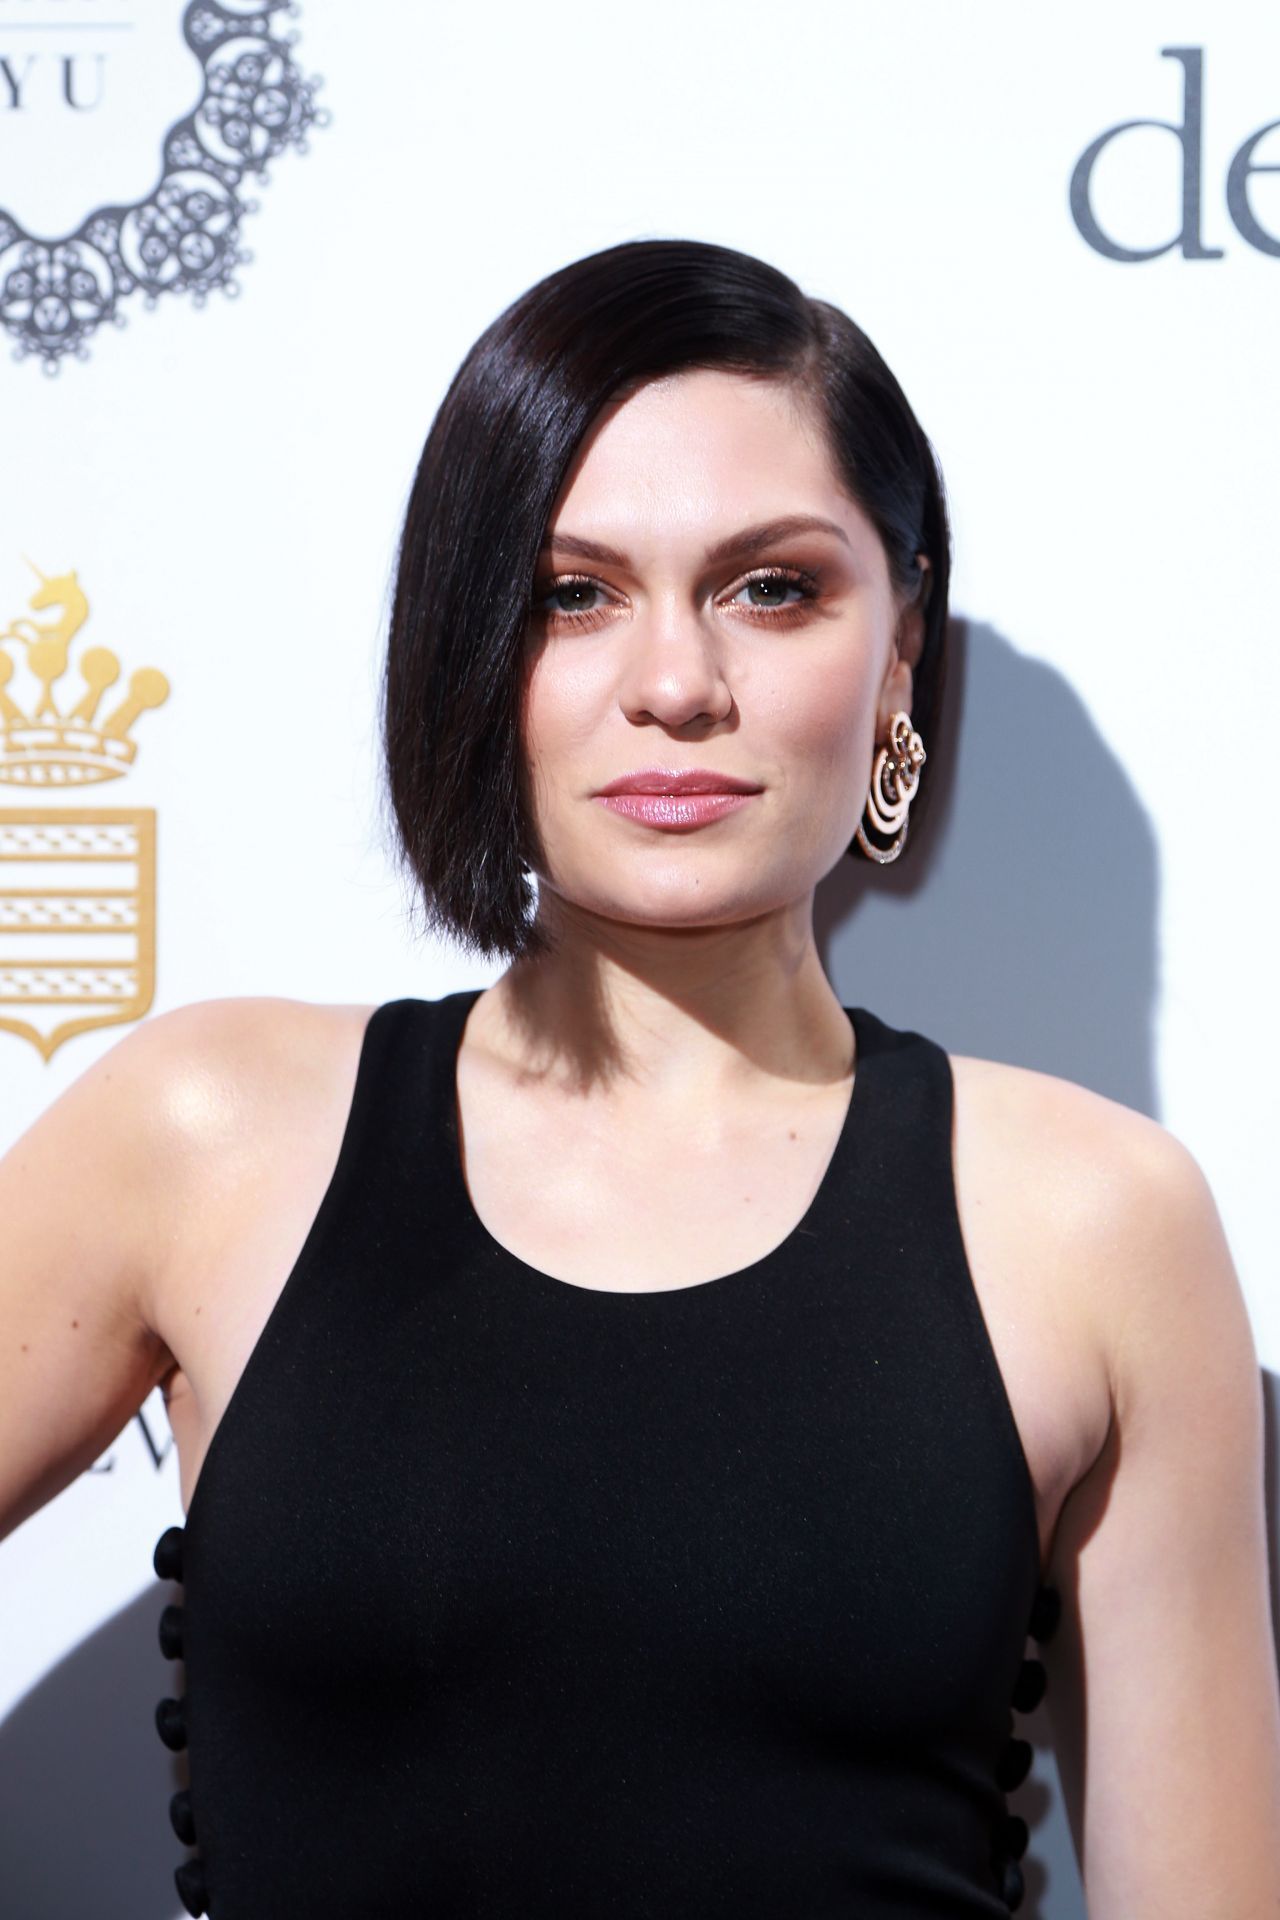 Jessie J At De Grisogono Party In Cannes France 05232017